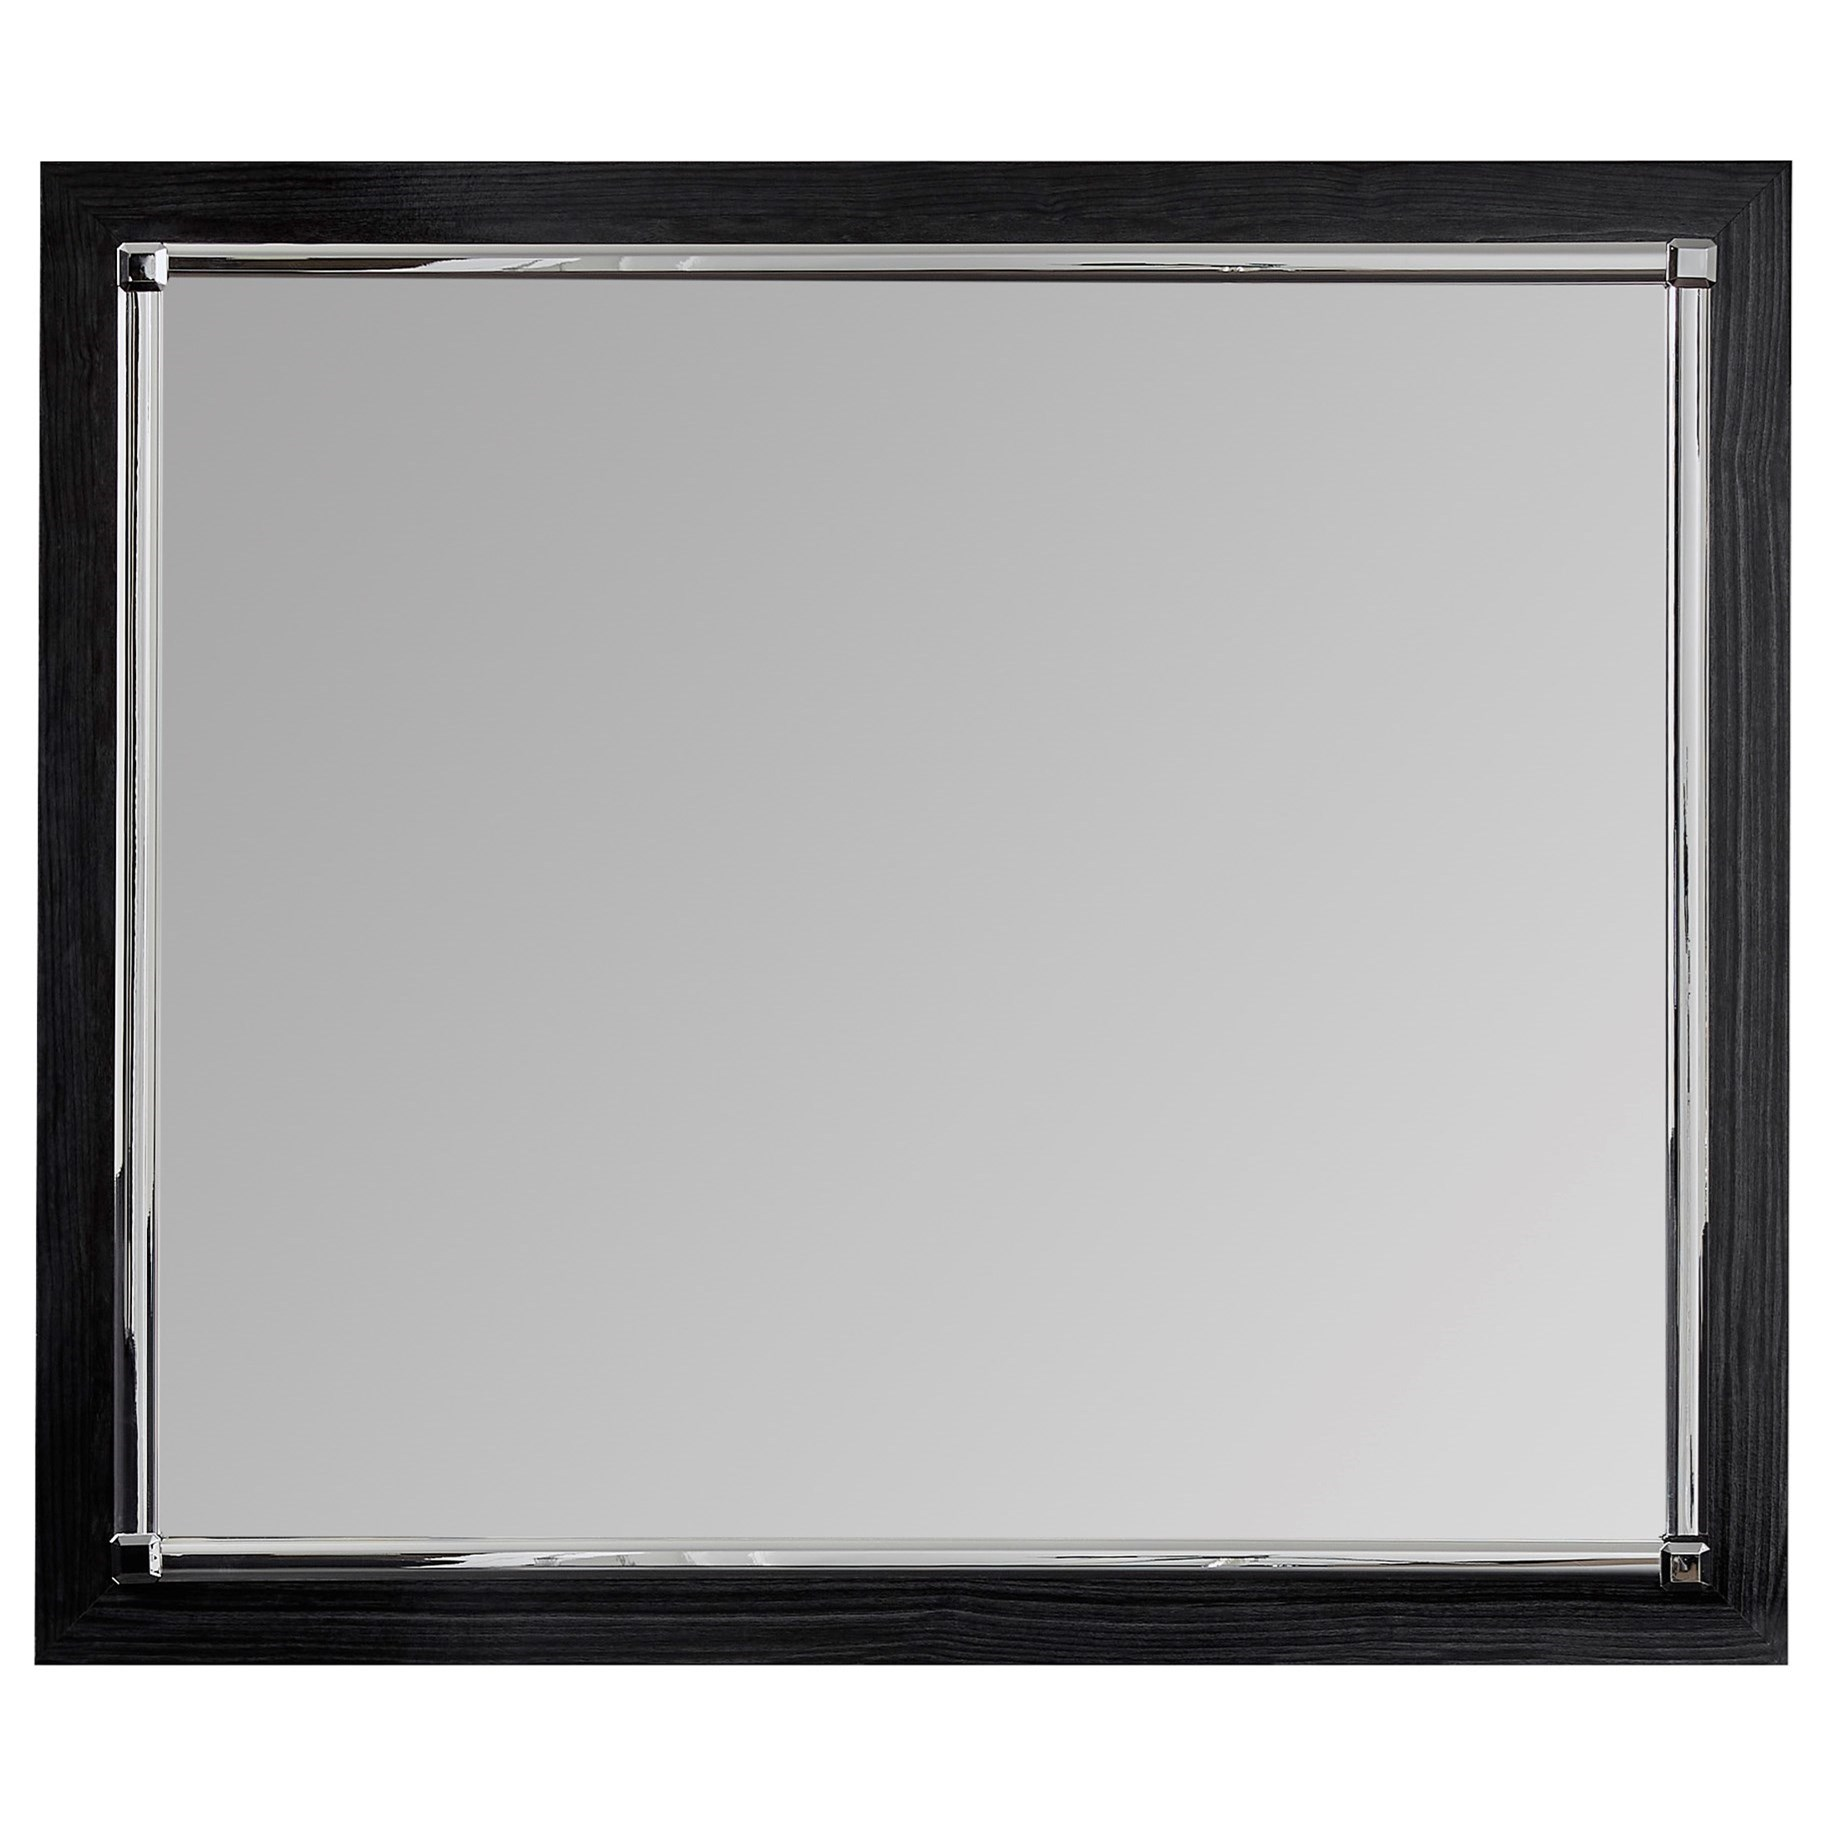 Kaydell Bedroom Mirror by Signature Design by Ashley at Zak's Warehouse Clearance Center